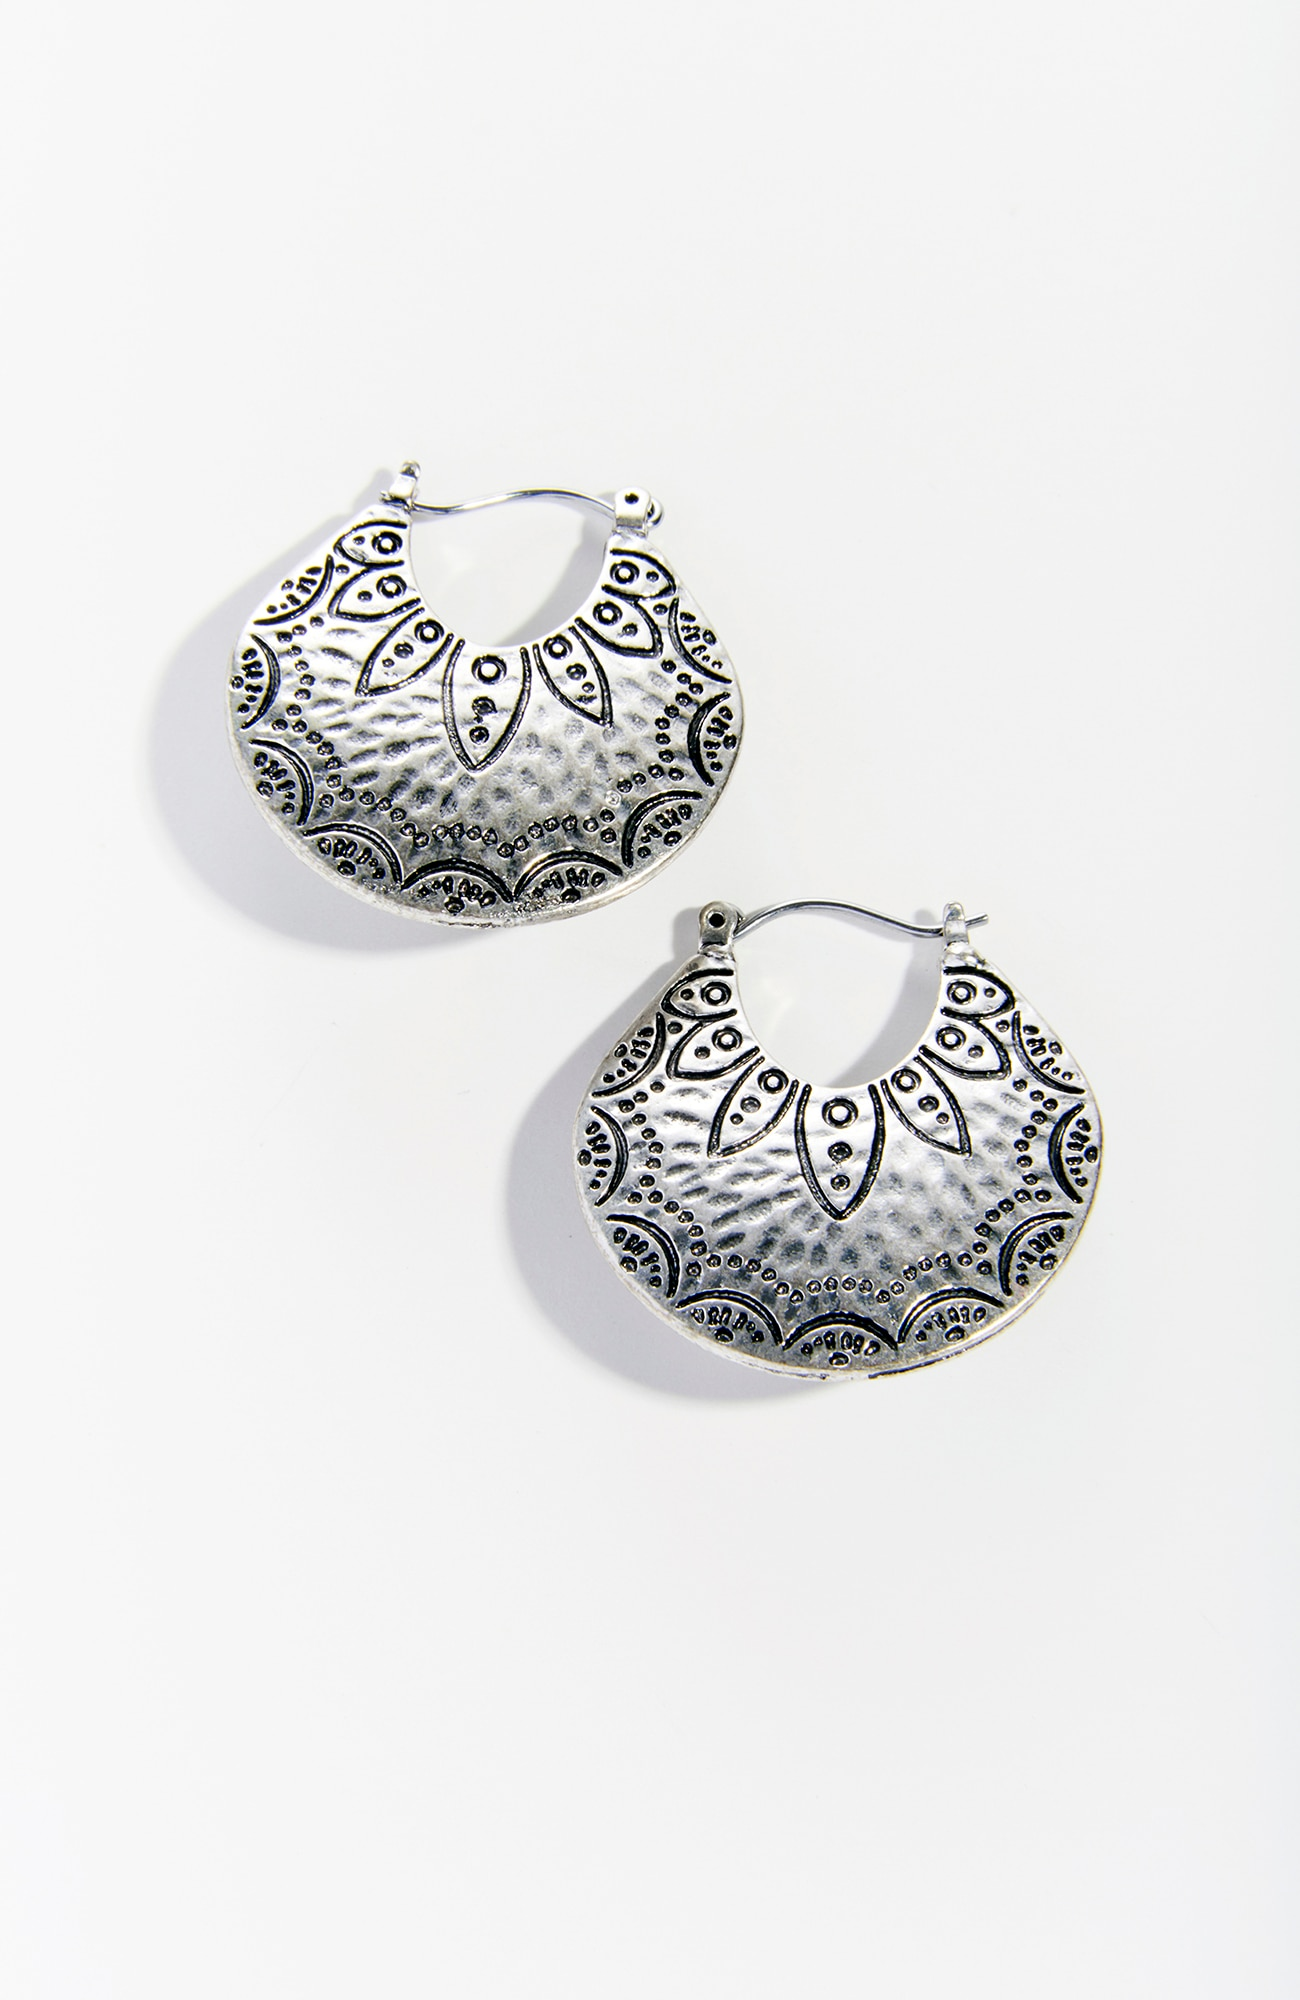 stamped-motif earrings